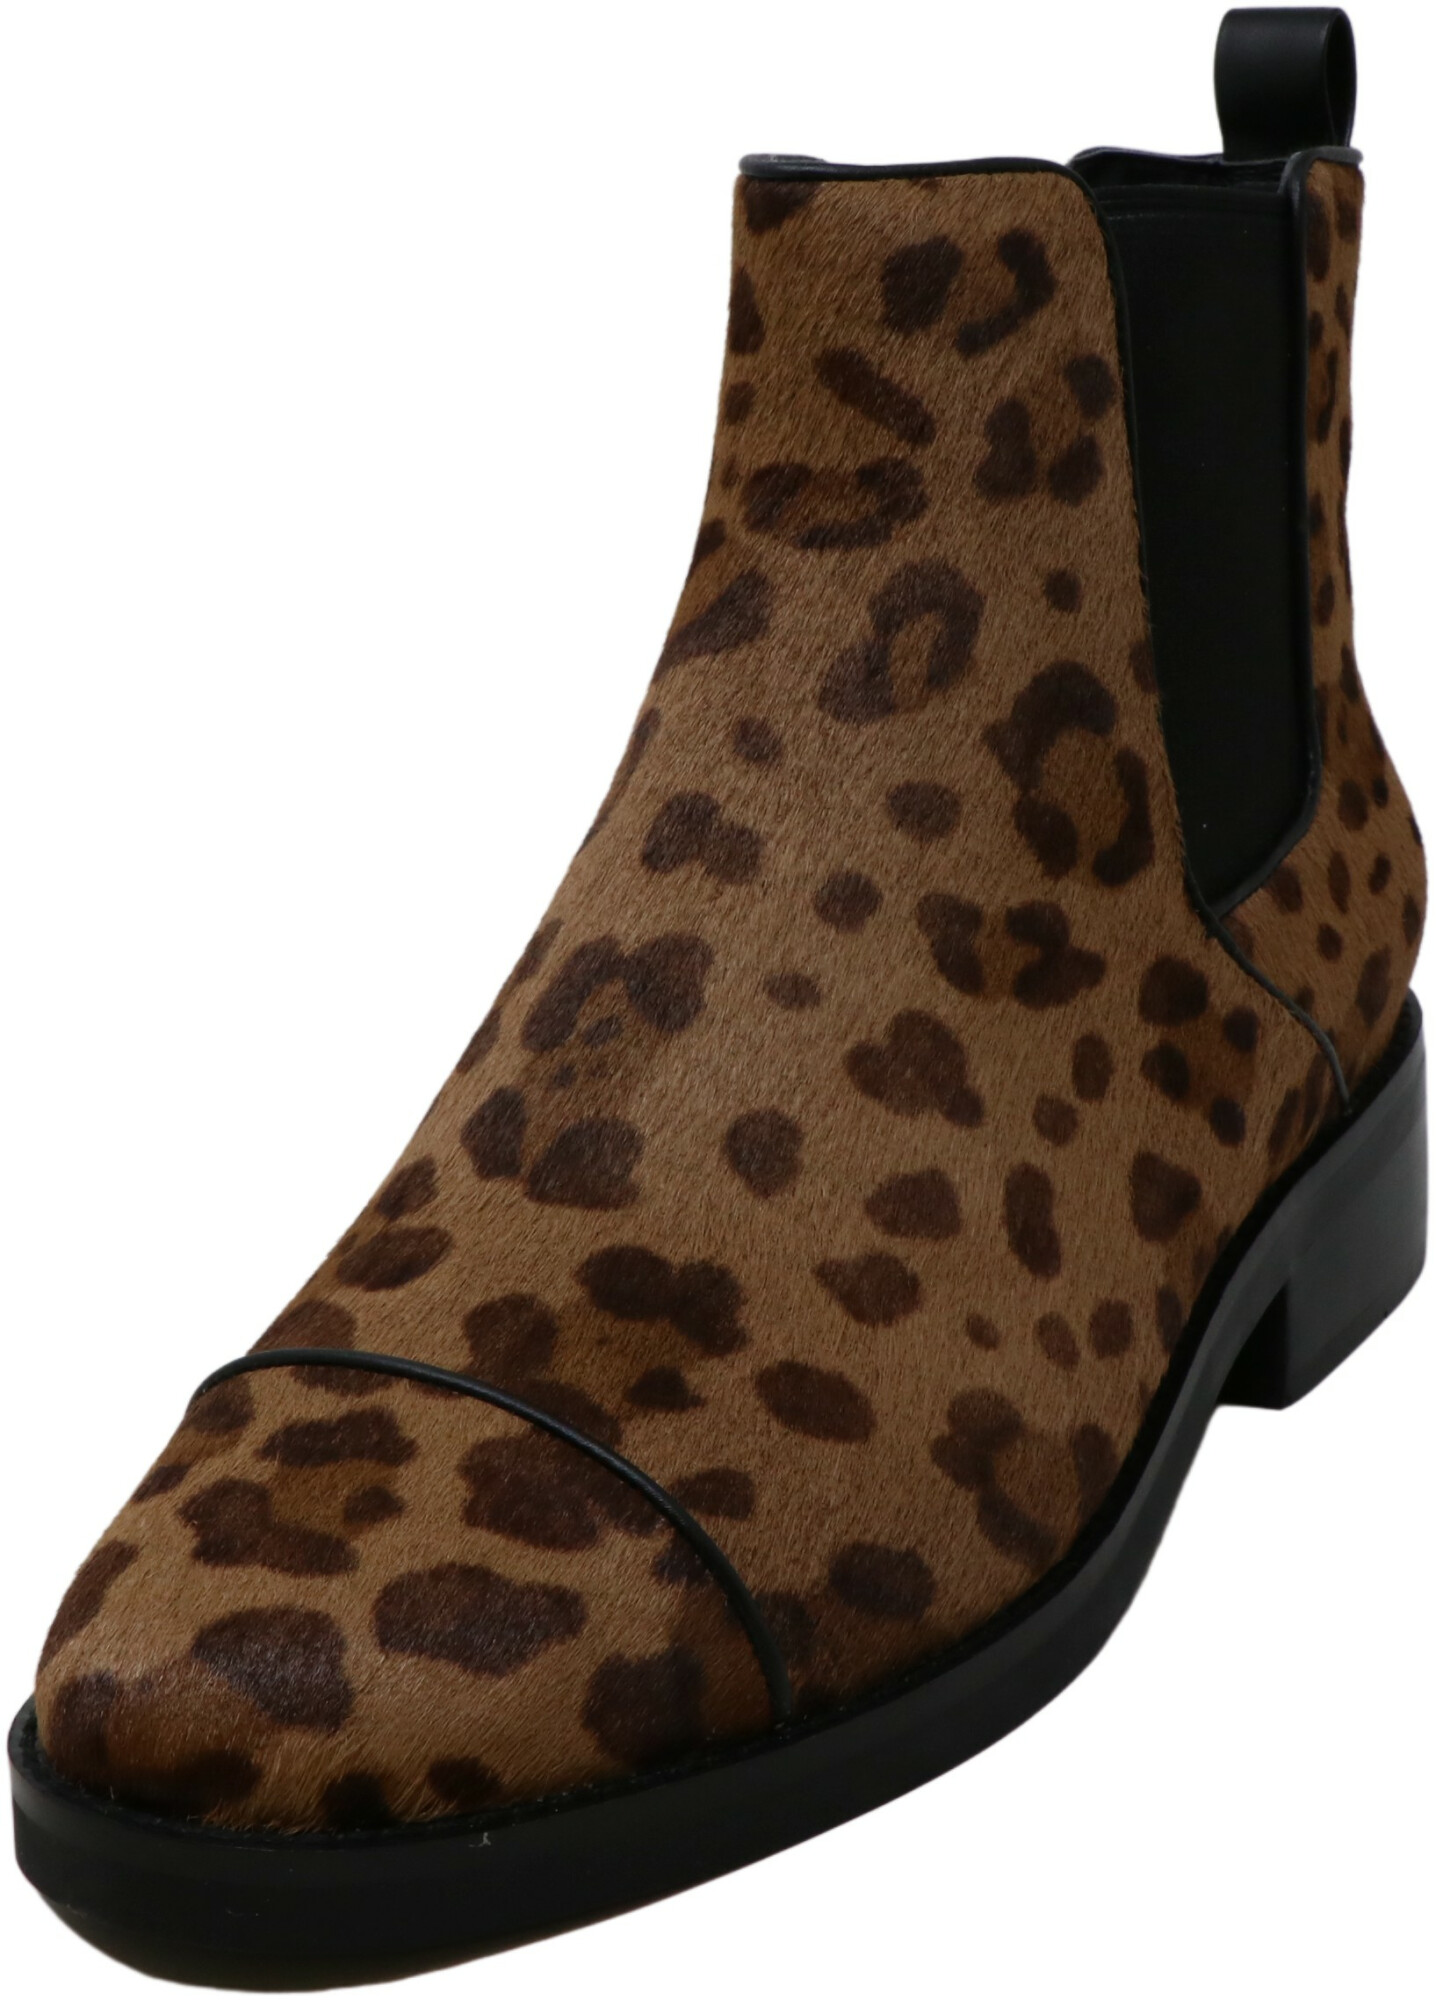 Cole Haan Women's Mara Grand Chelsea Boot Leather Ocelot Ankle-High Haircalf - 11M